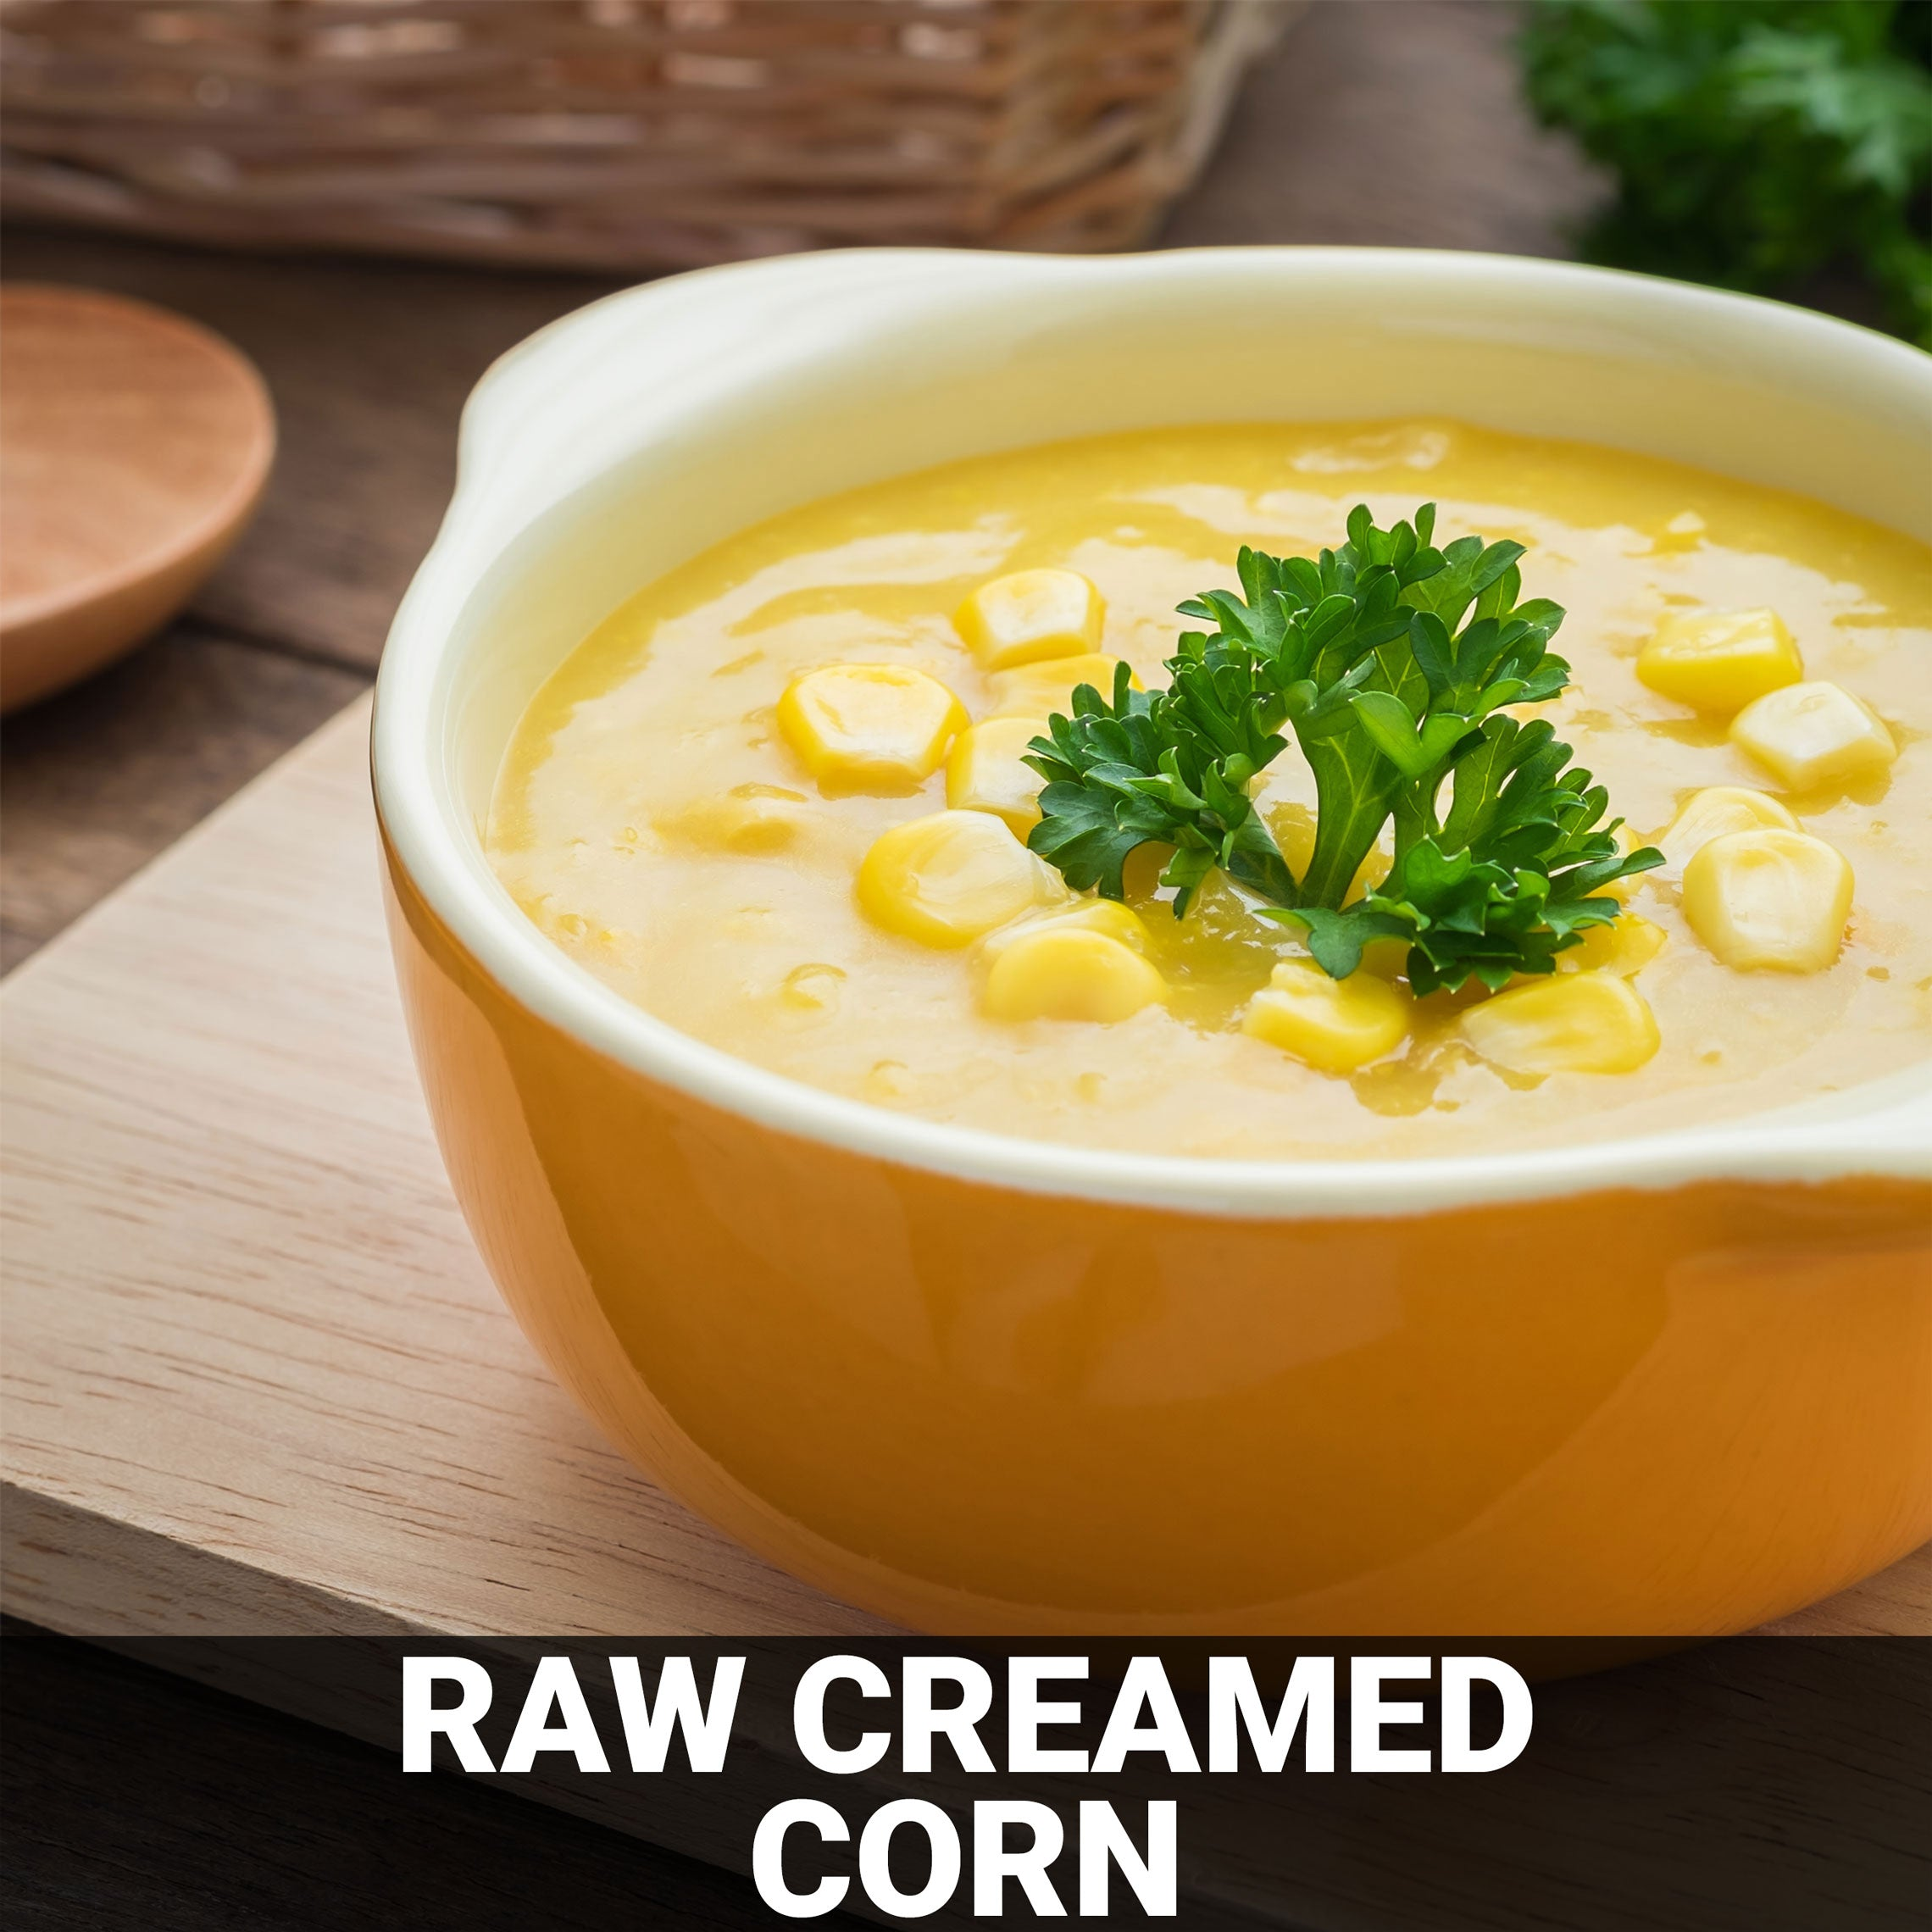 Raw Creamed Corn Recipe - Foods Alive